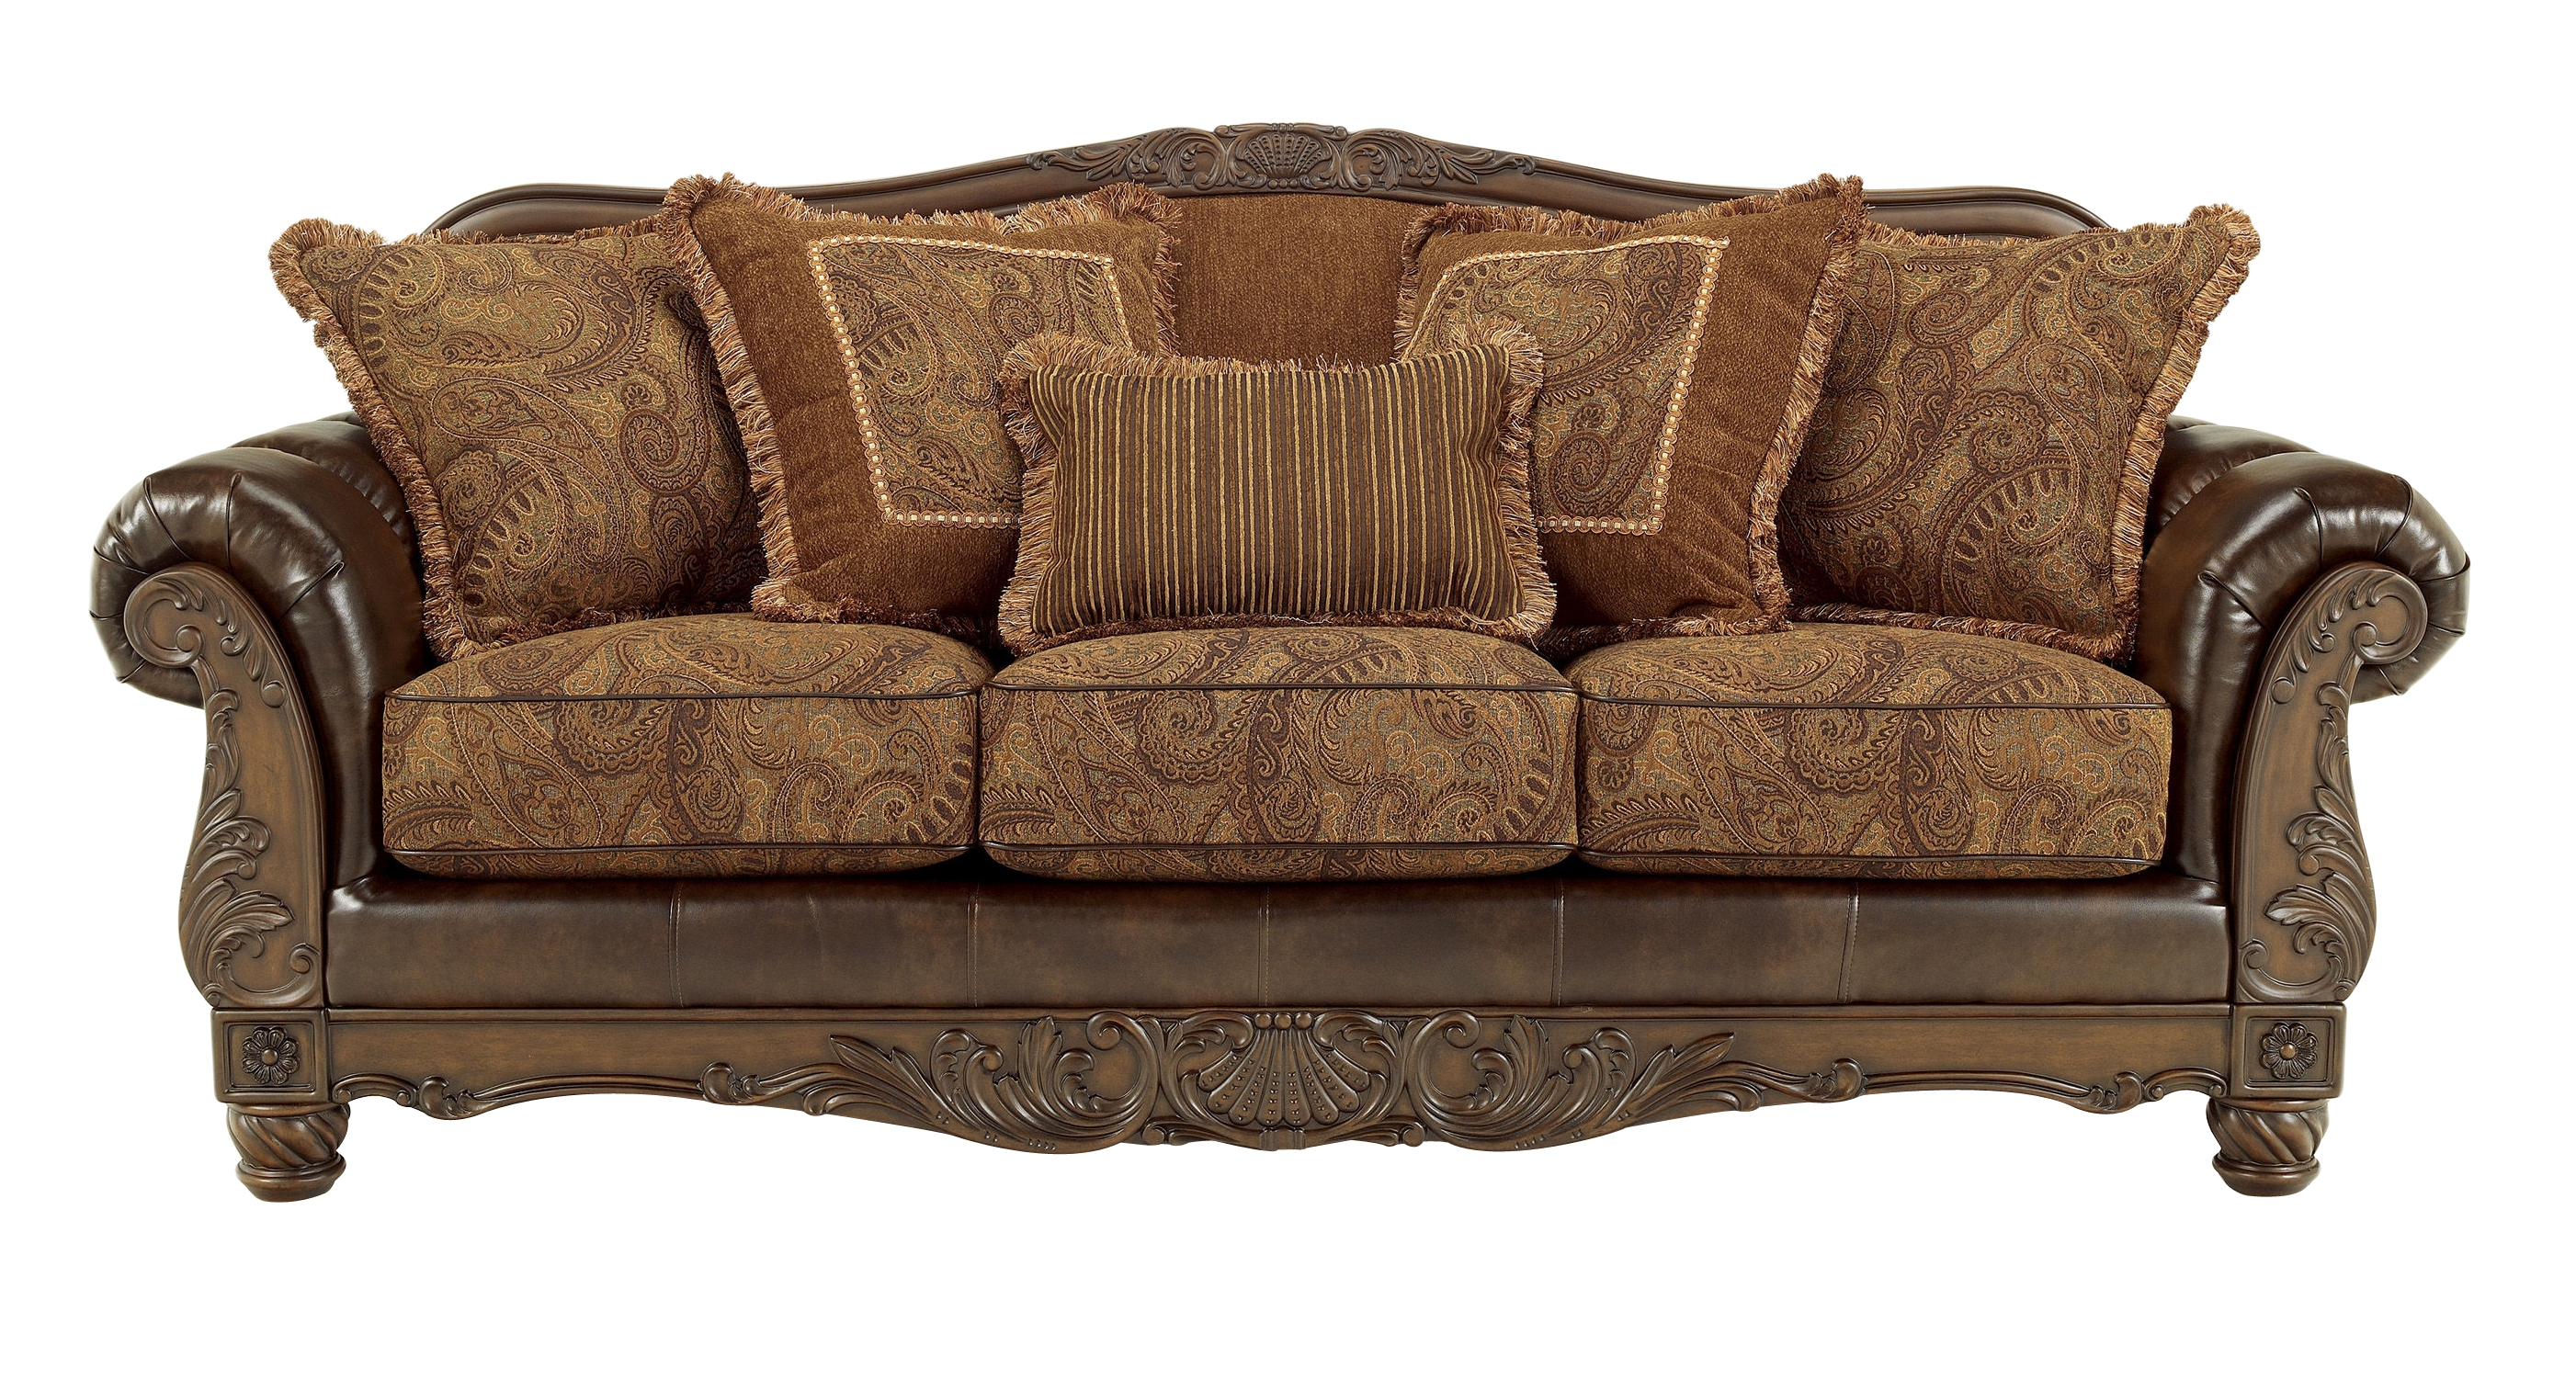 ashley furniture fresco durablend antique sofa the classy home rh theclassyhome com antique sofa bed for sale antique kroehler sofa bed